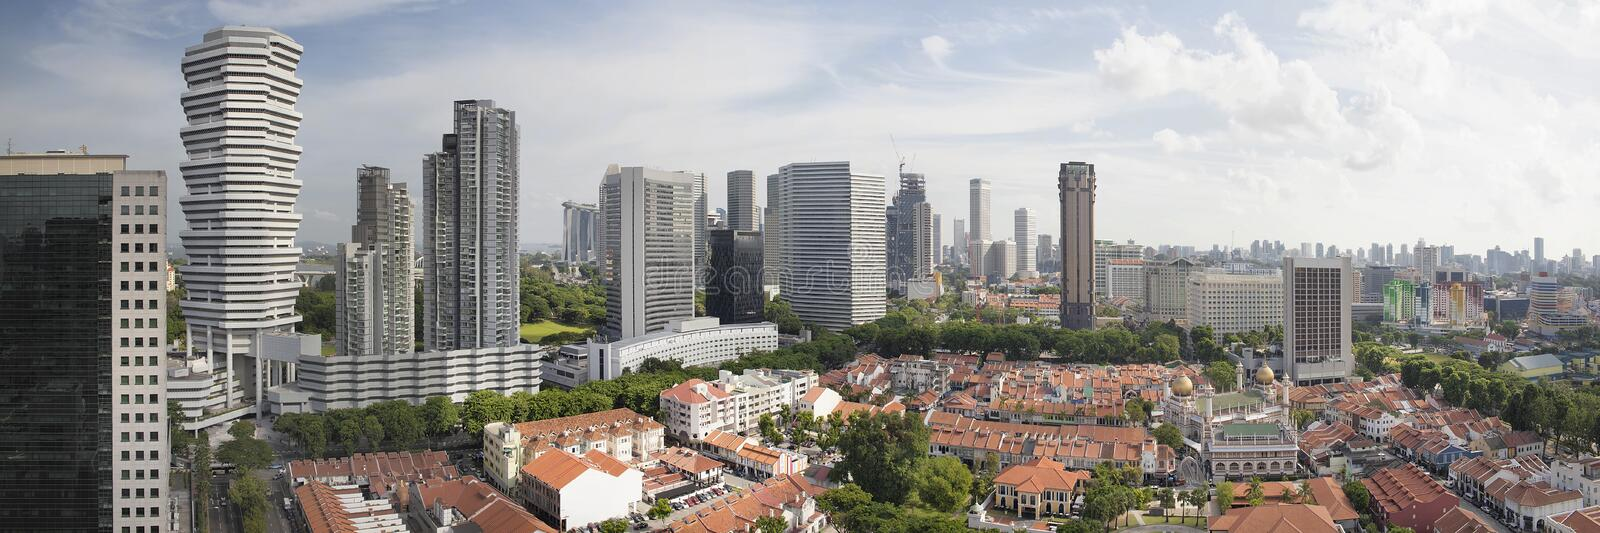 Kampong Glam in Singapore Aerial View Panorama royalty free stock photography